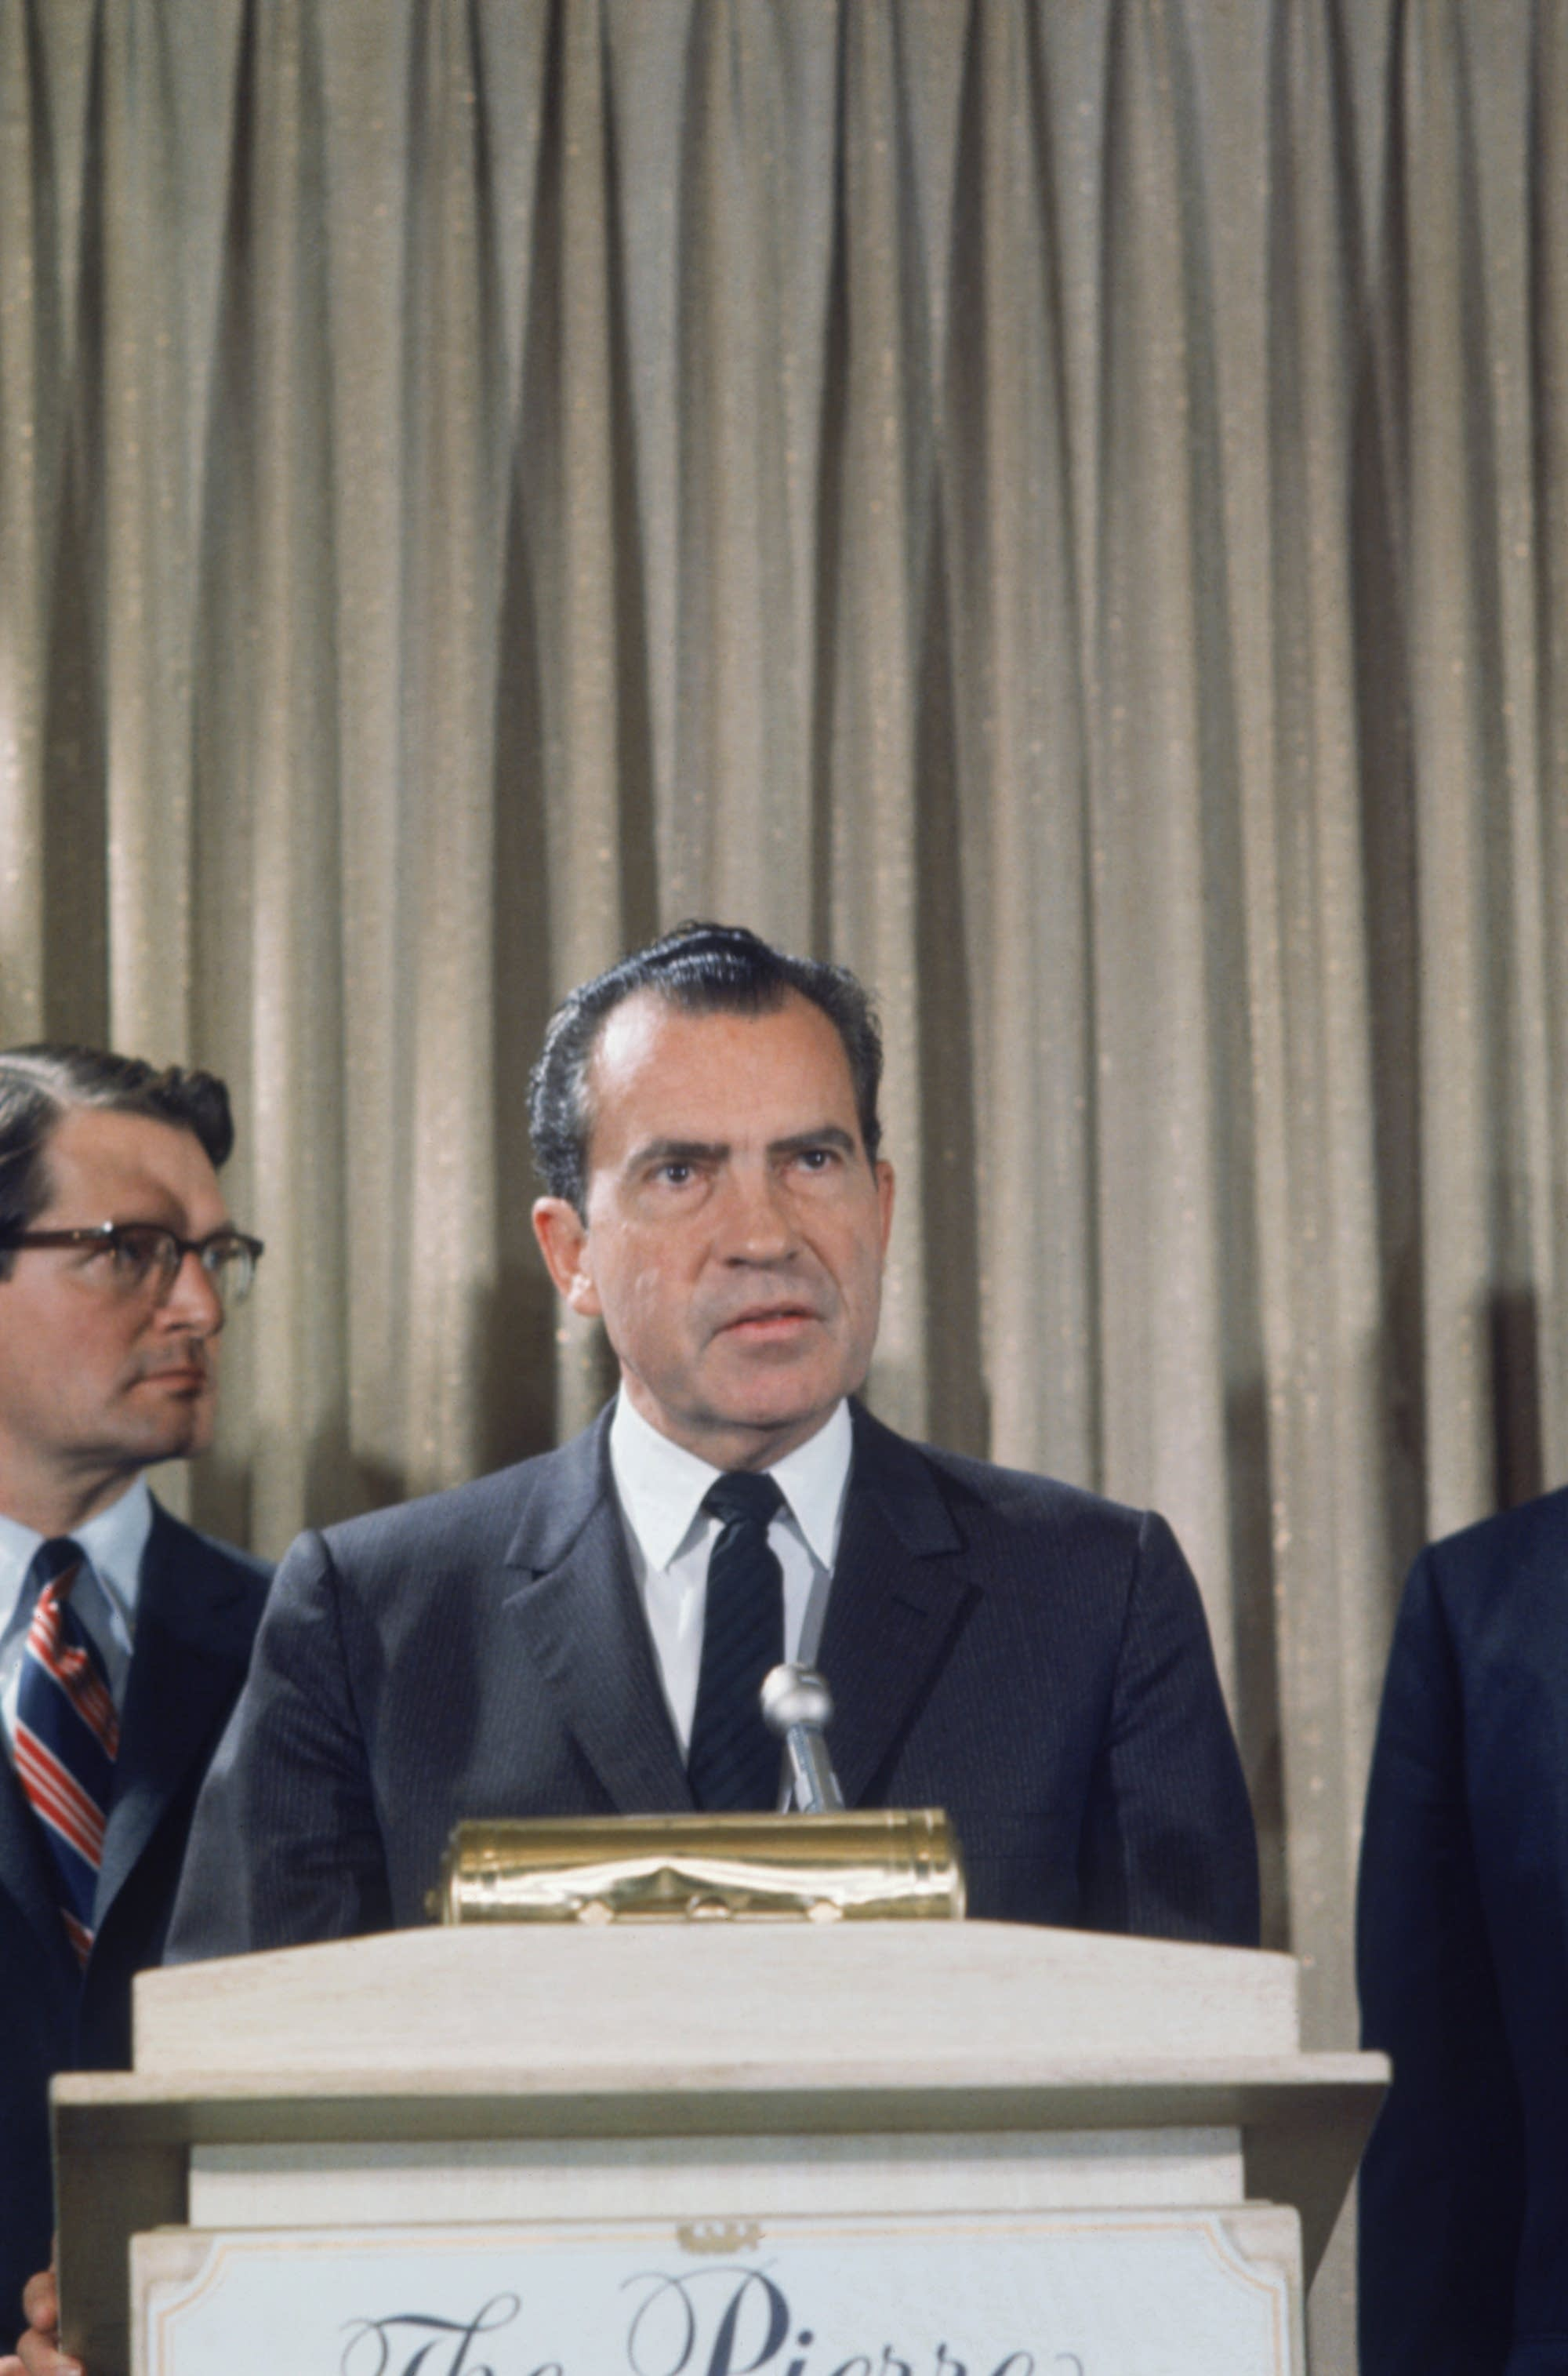 President Richard Nixon, to his left is Chief Justice Earl Warren.